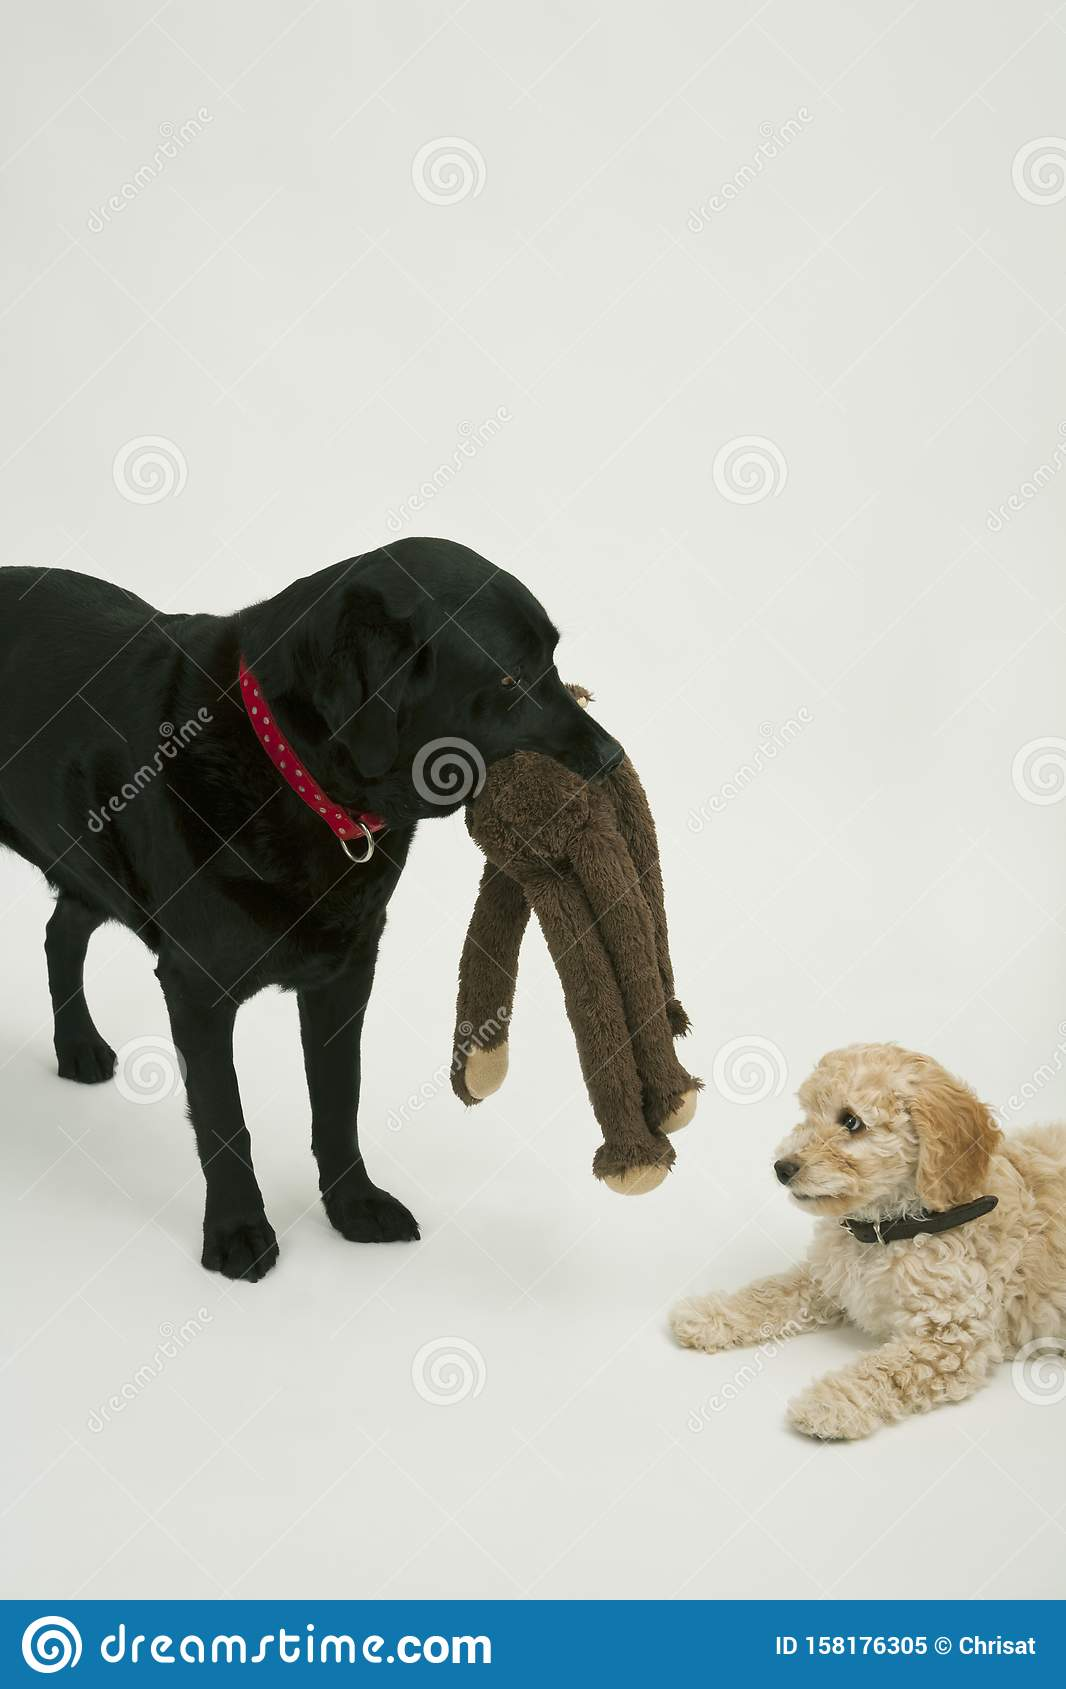 An elderly black labrador waits patiently while A cute Cockapoo puppy tries to take her soft toy away.